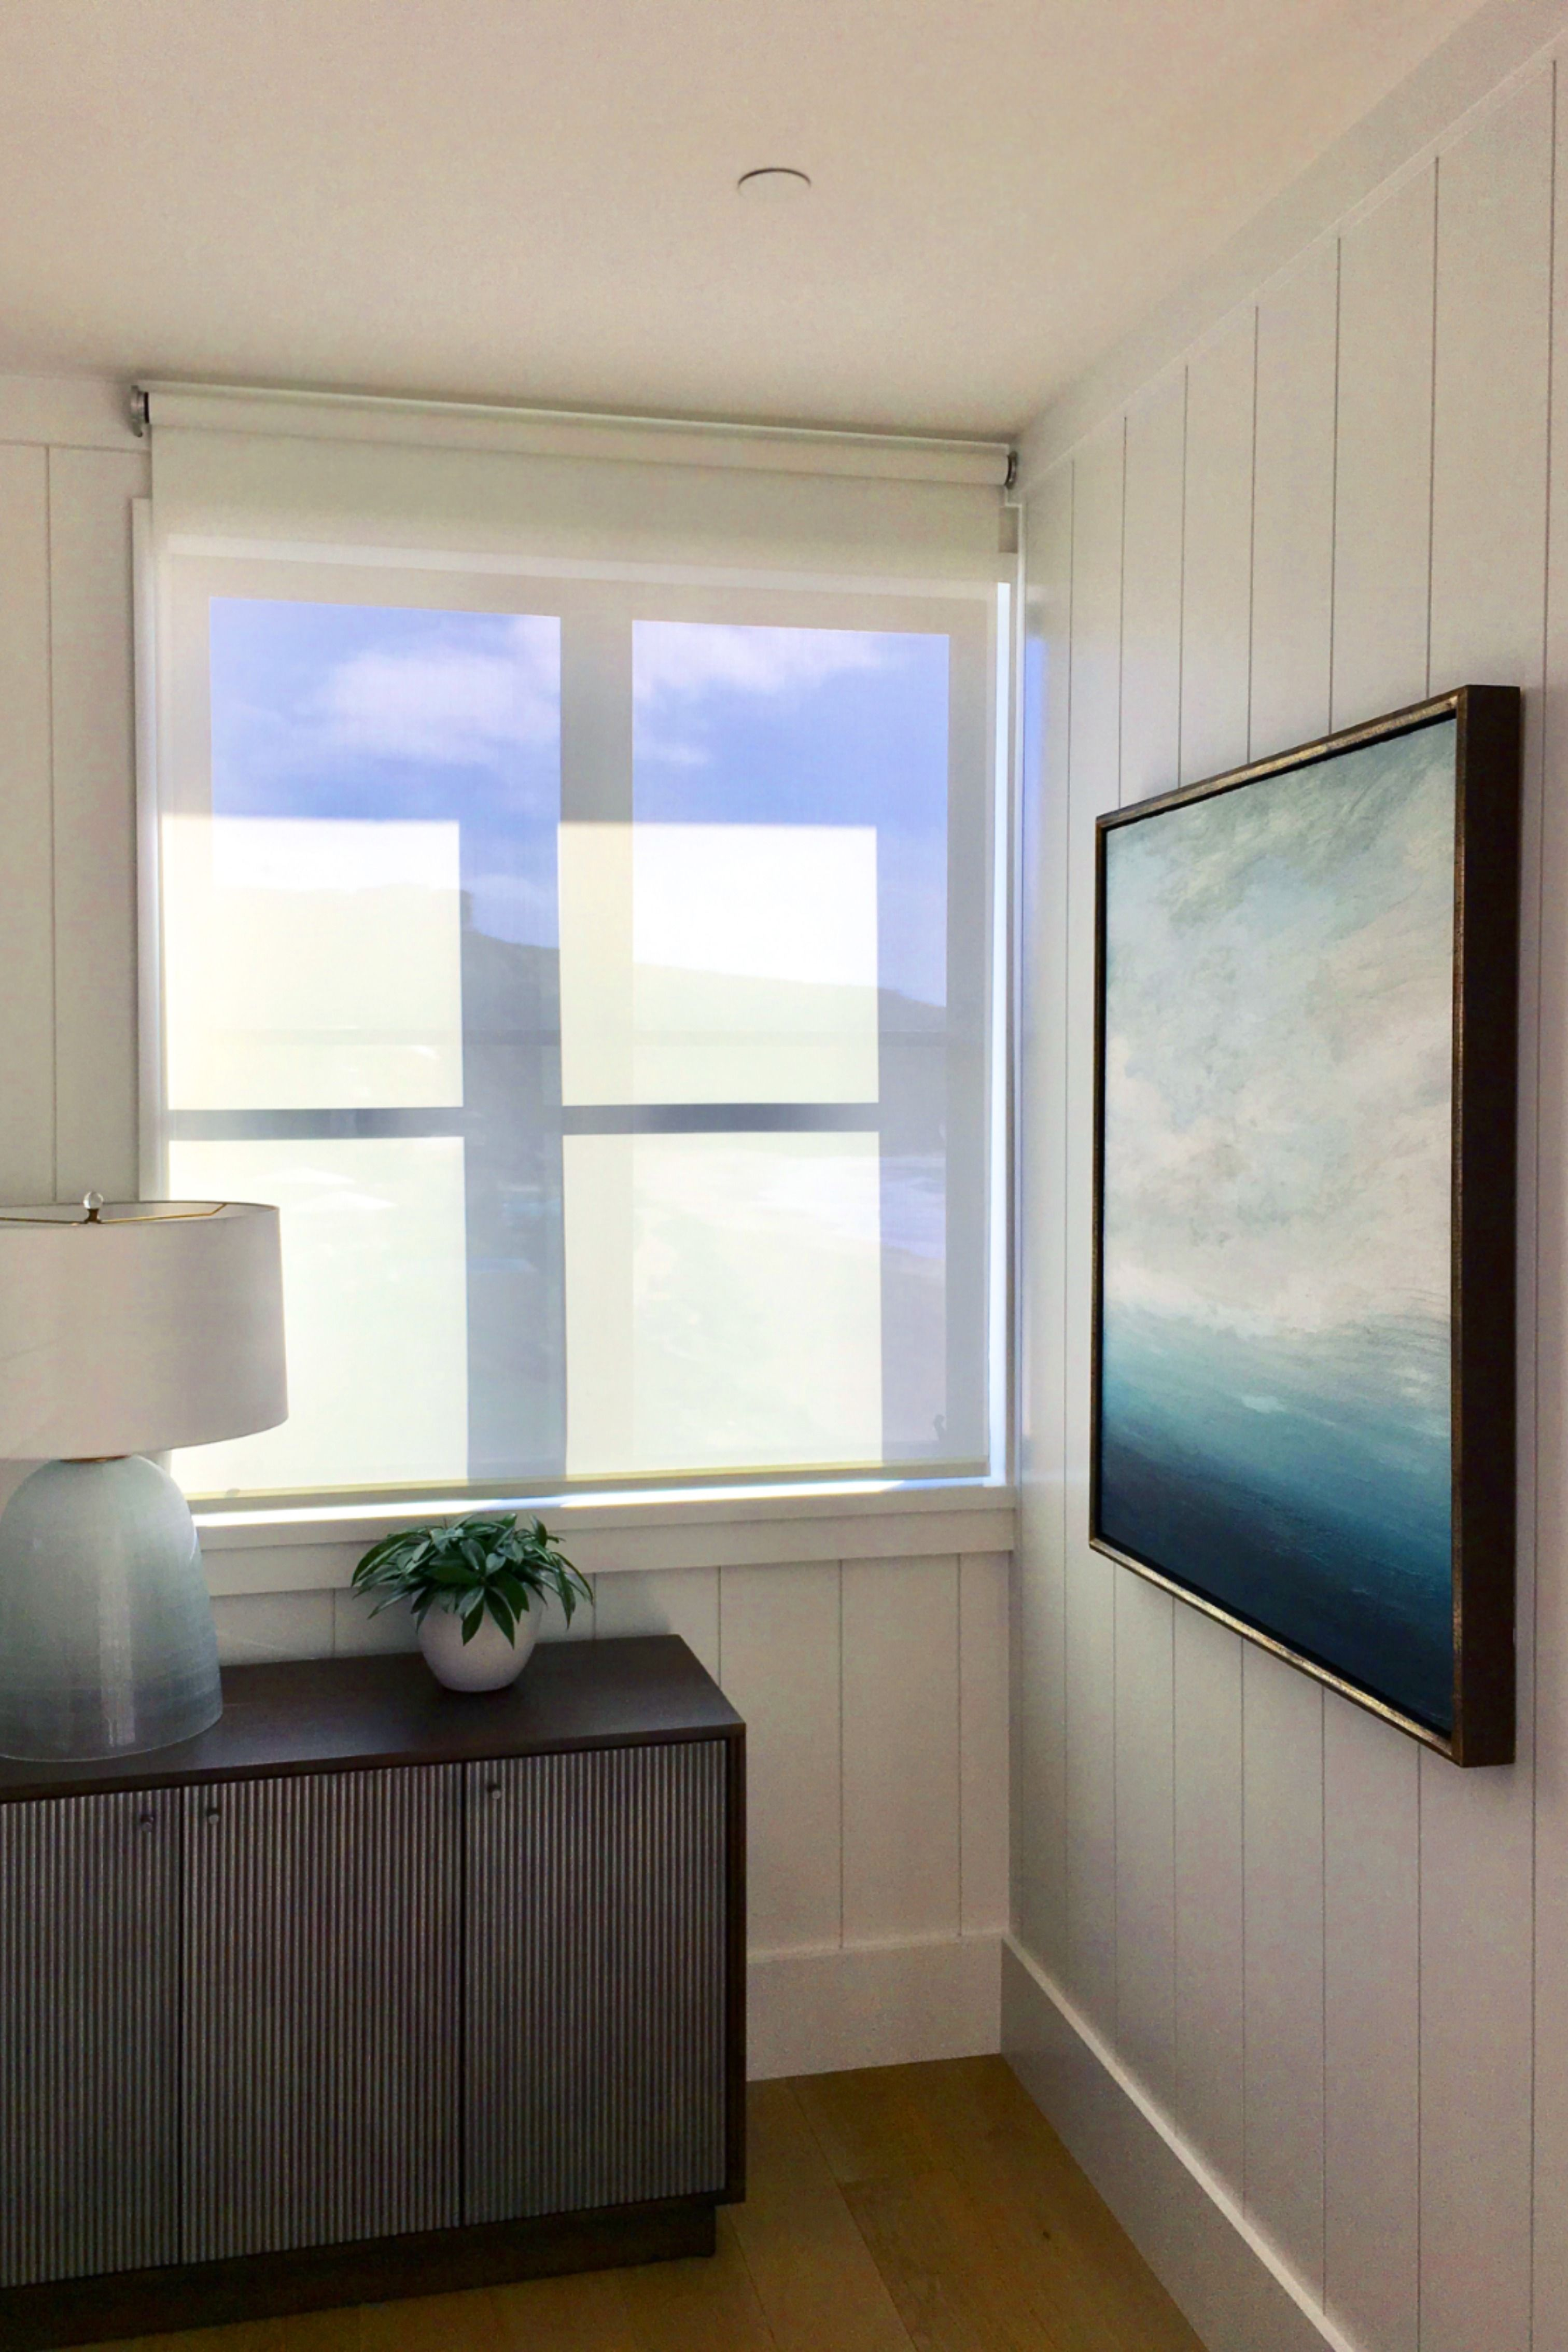 Motorized R Series Shade By J Geiger Is Programmed To Stop At The Bottom Of This Window Leavi In 2020 Bedroom Design Inspiration Motorized Window Shades Window Shades